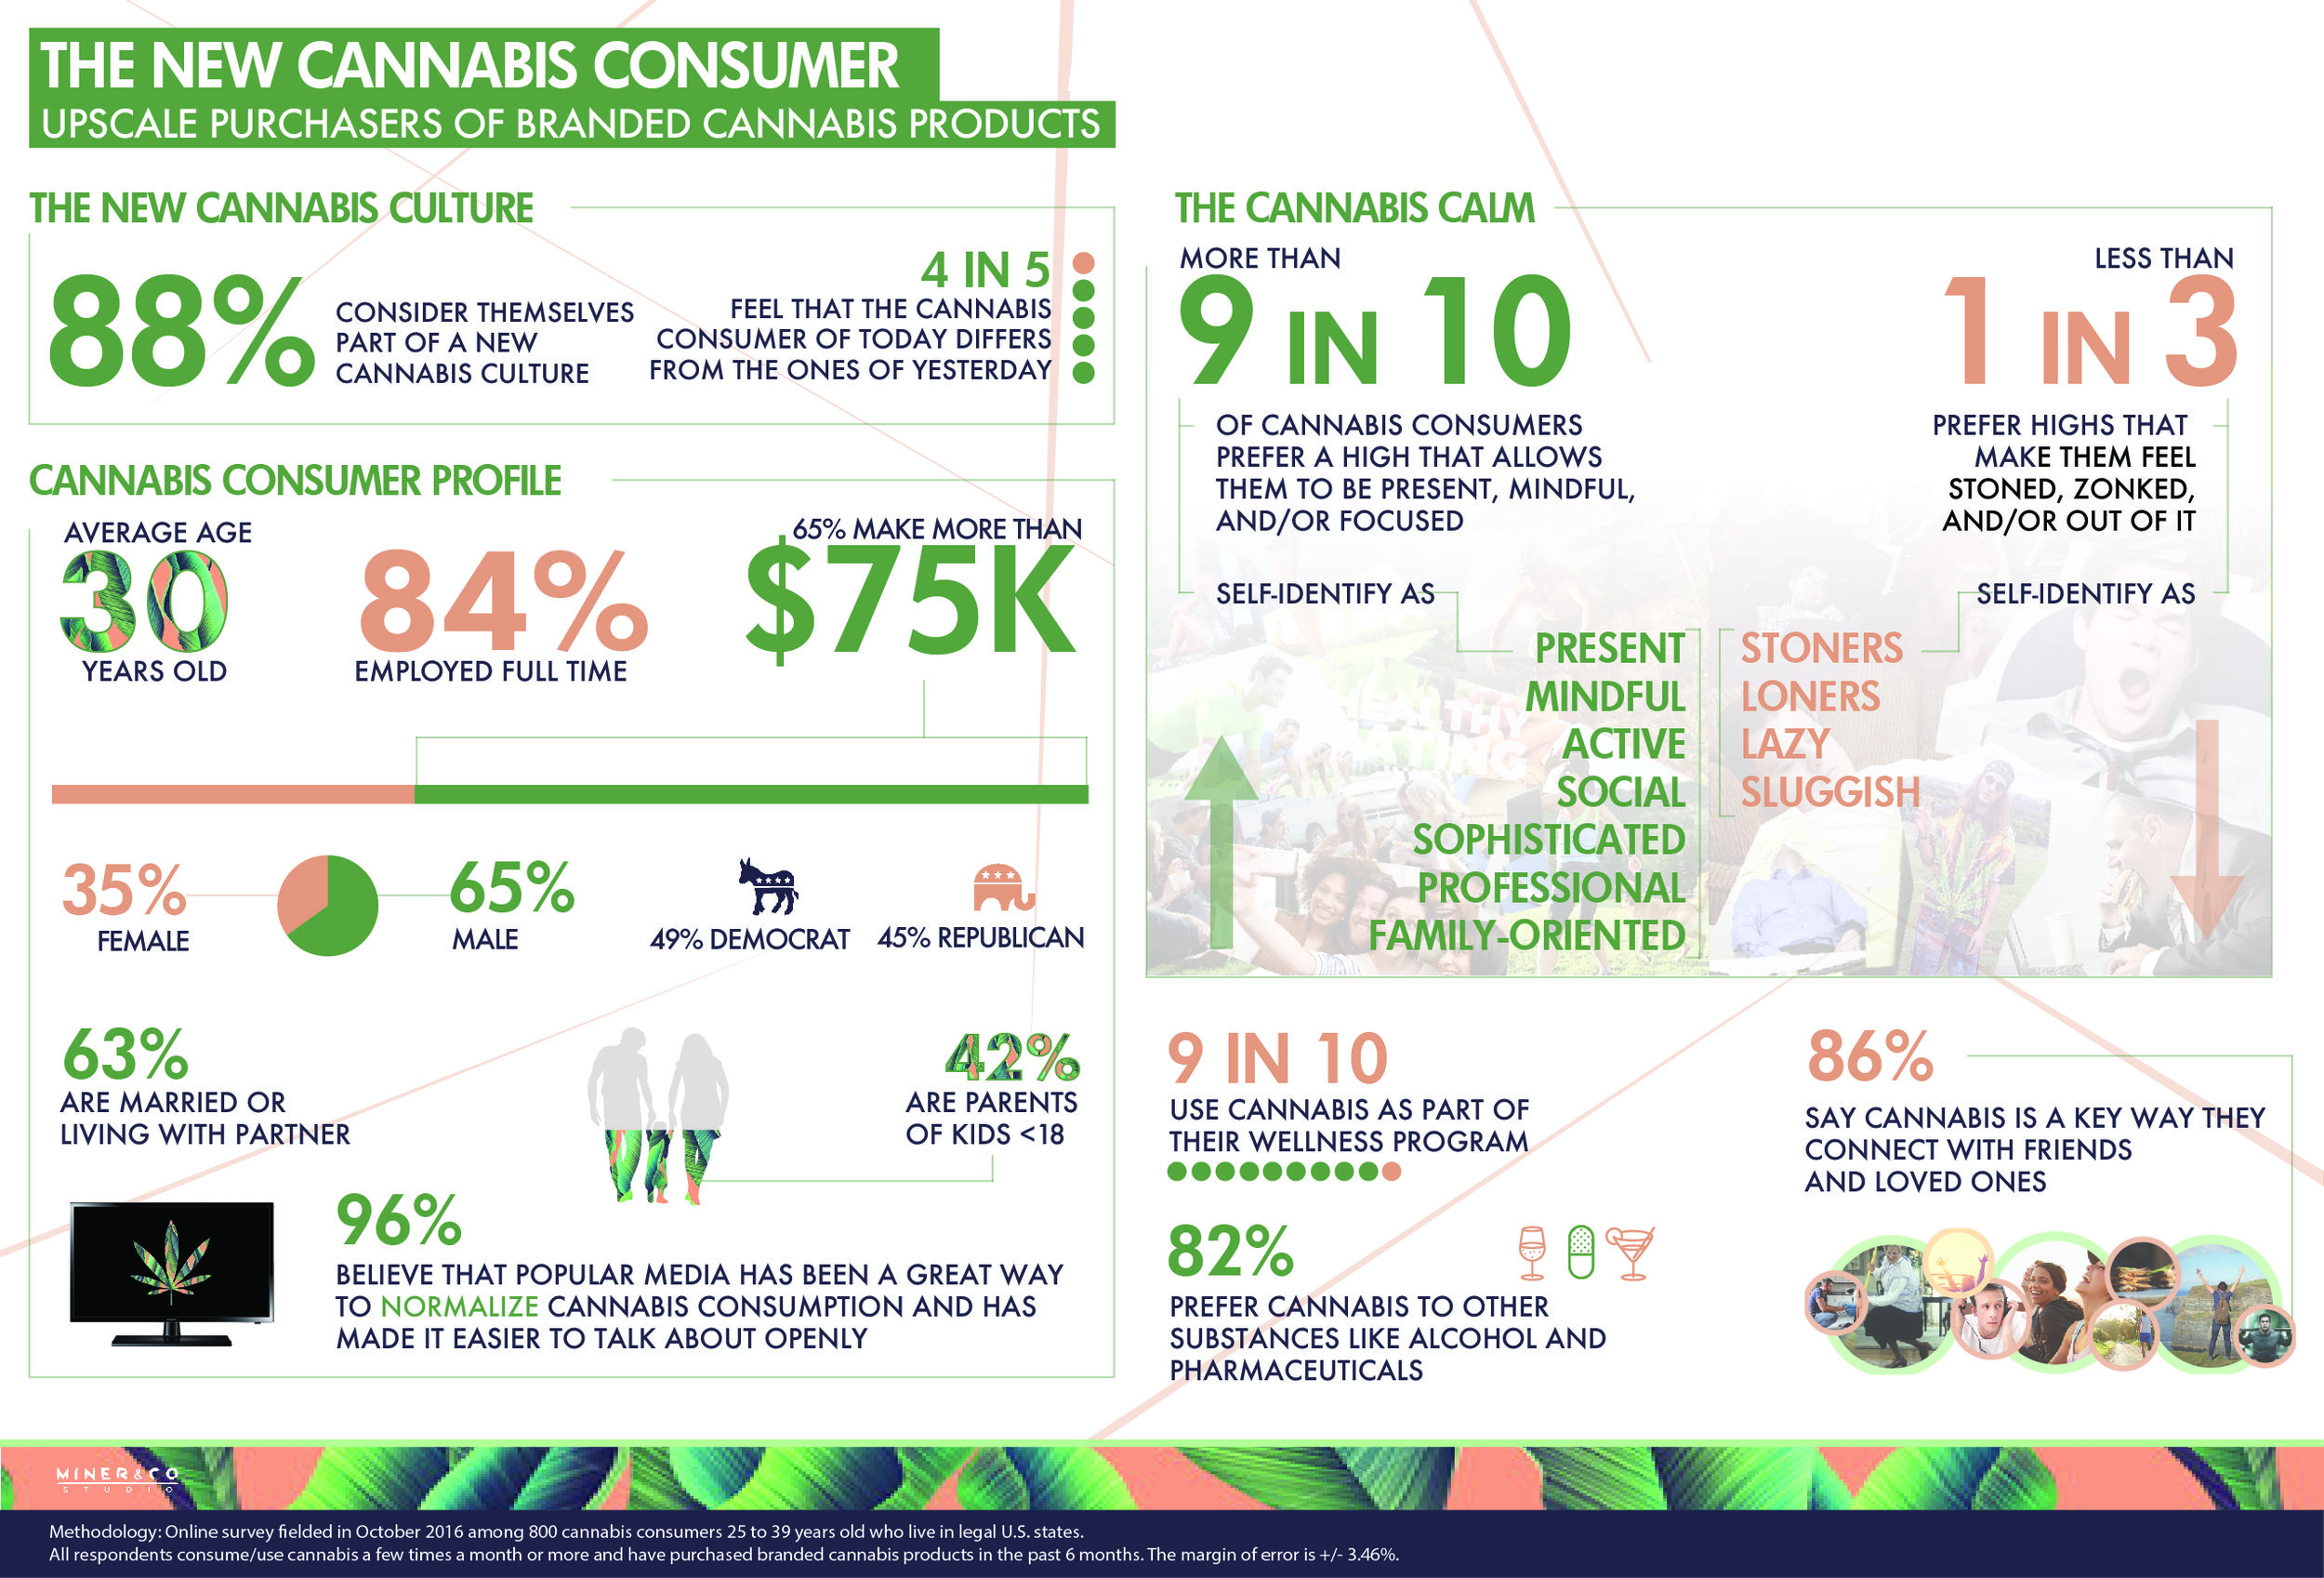 Upscale Purchasers - The New Cannabis Consumer.jpeg